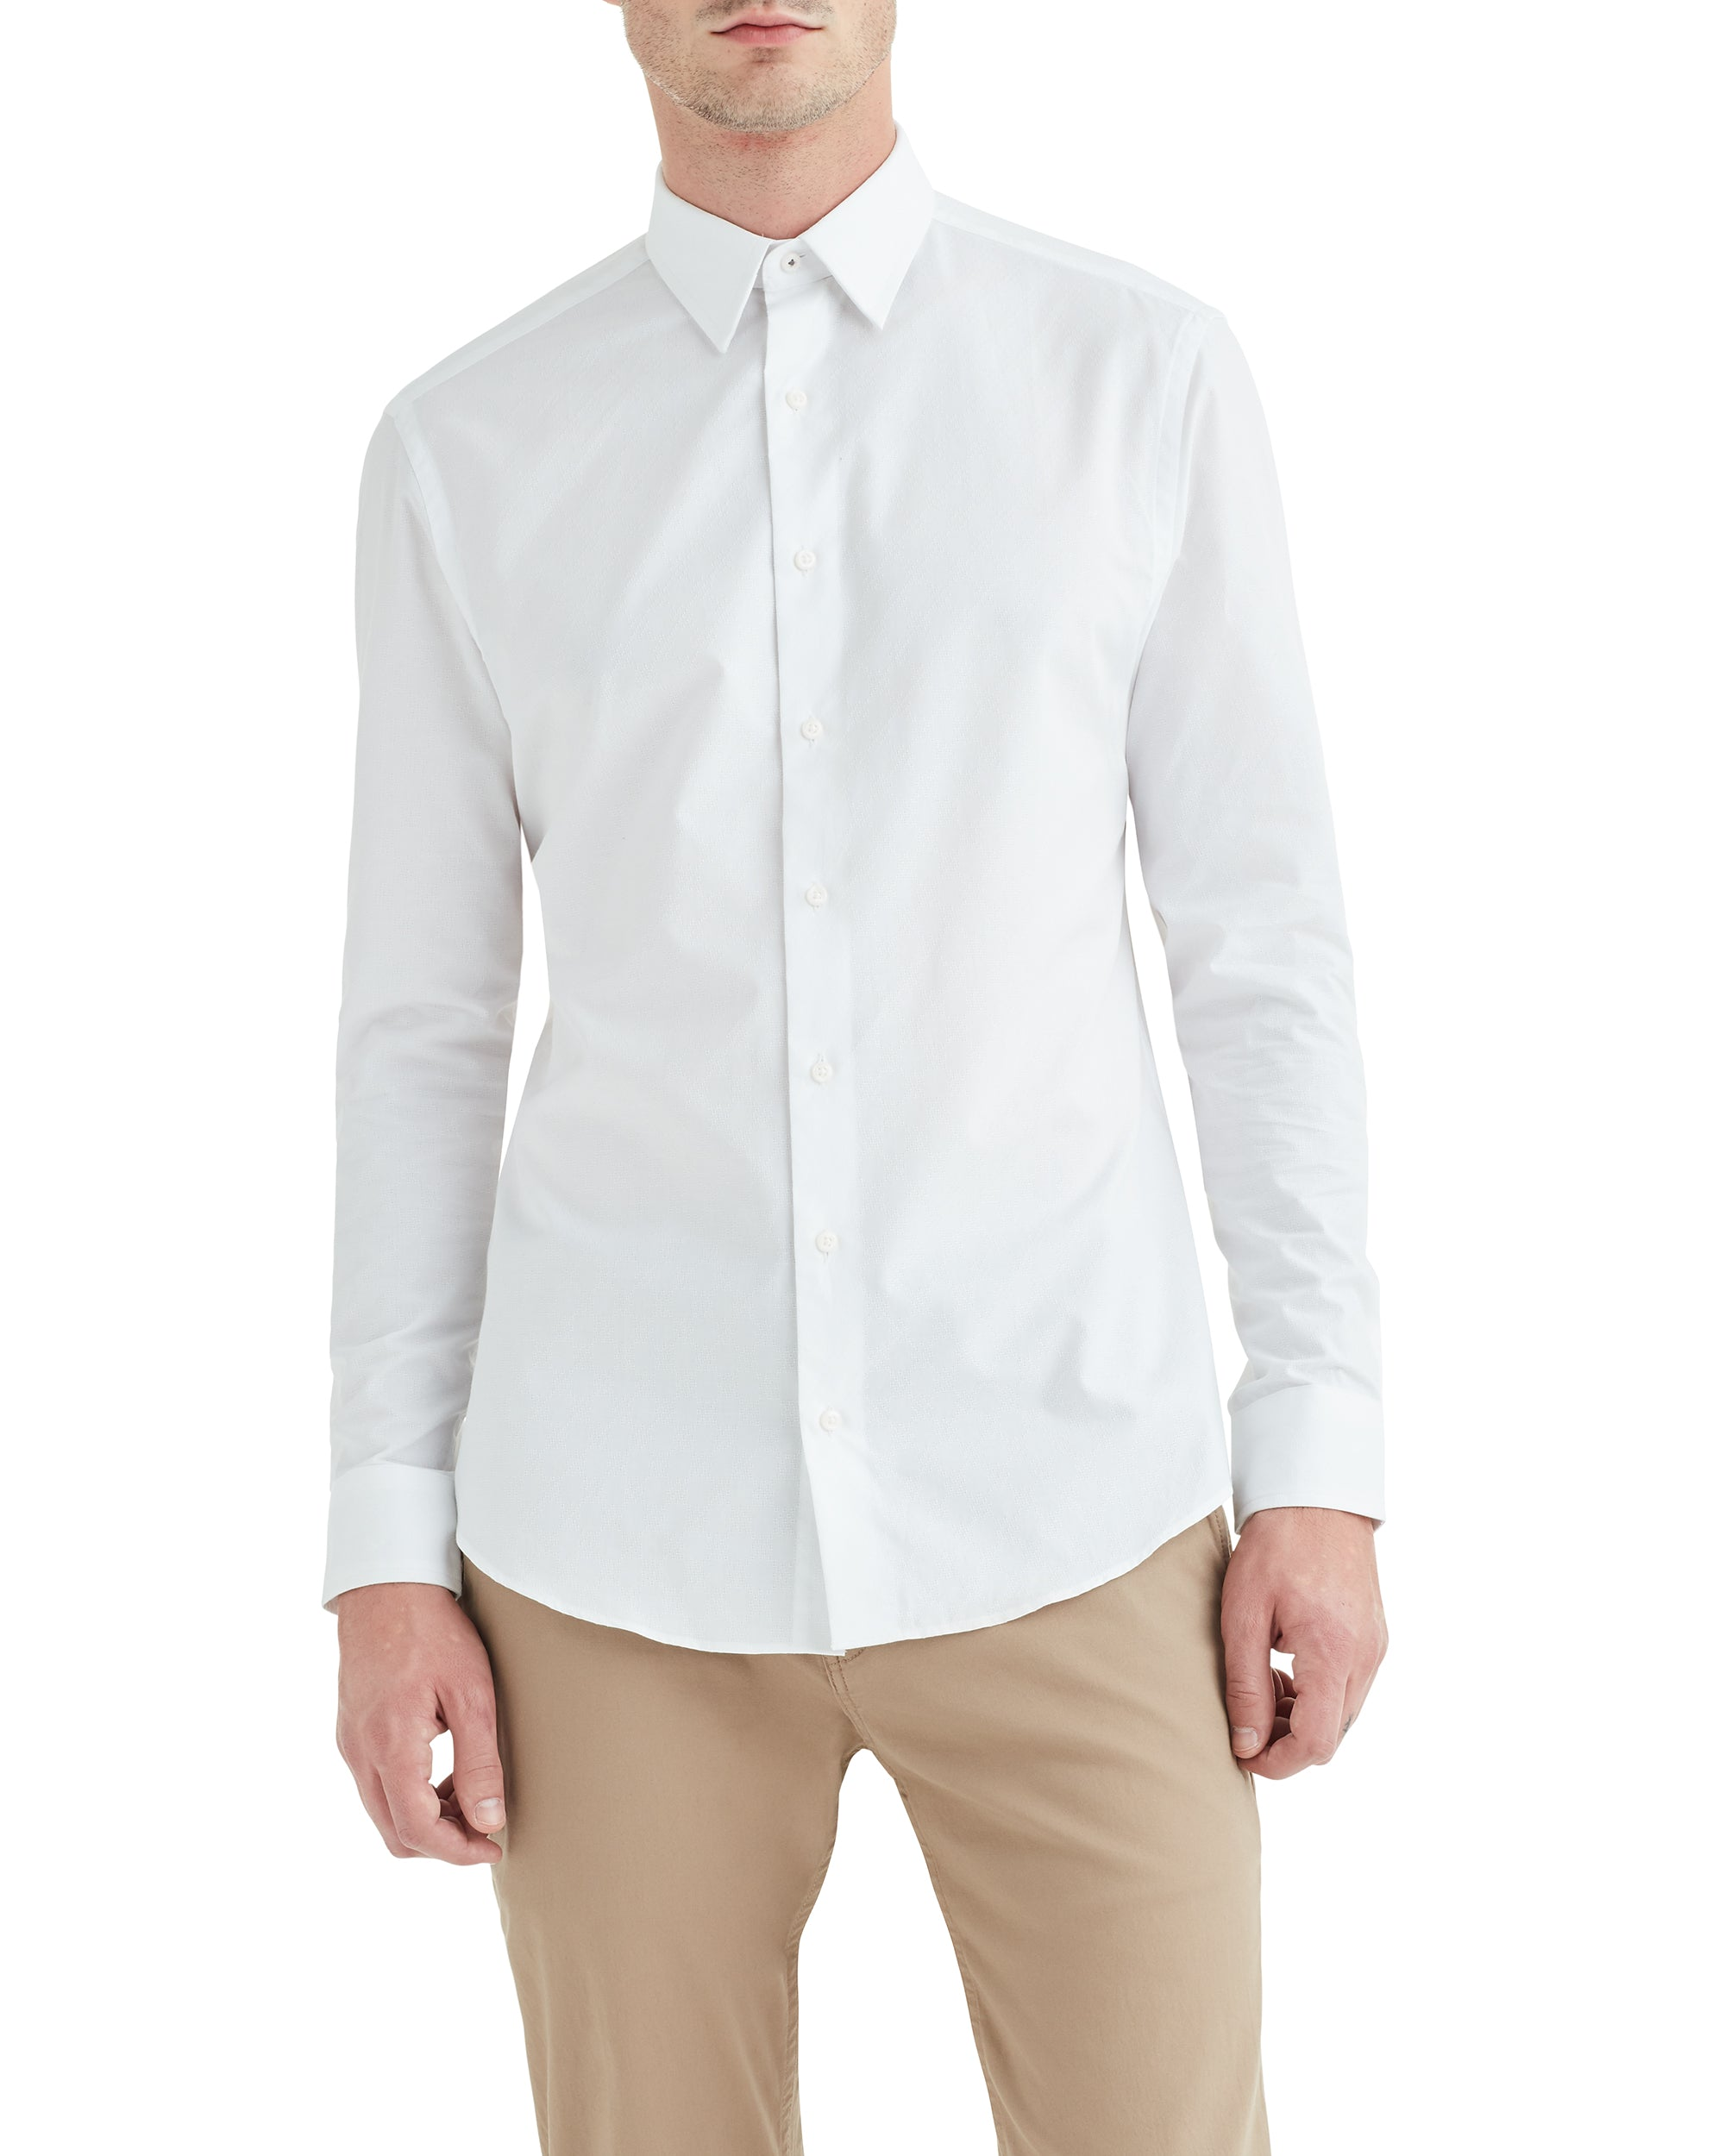 White Argyle Dobby Slim-Fit Dress Shirt